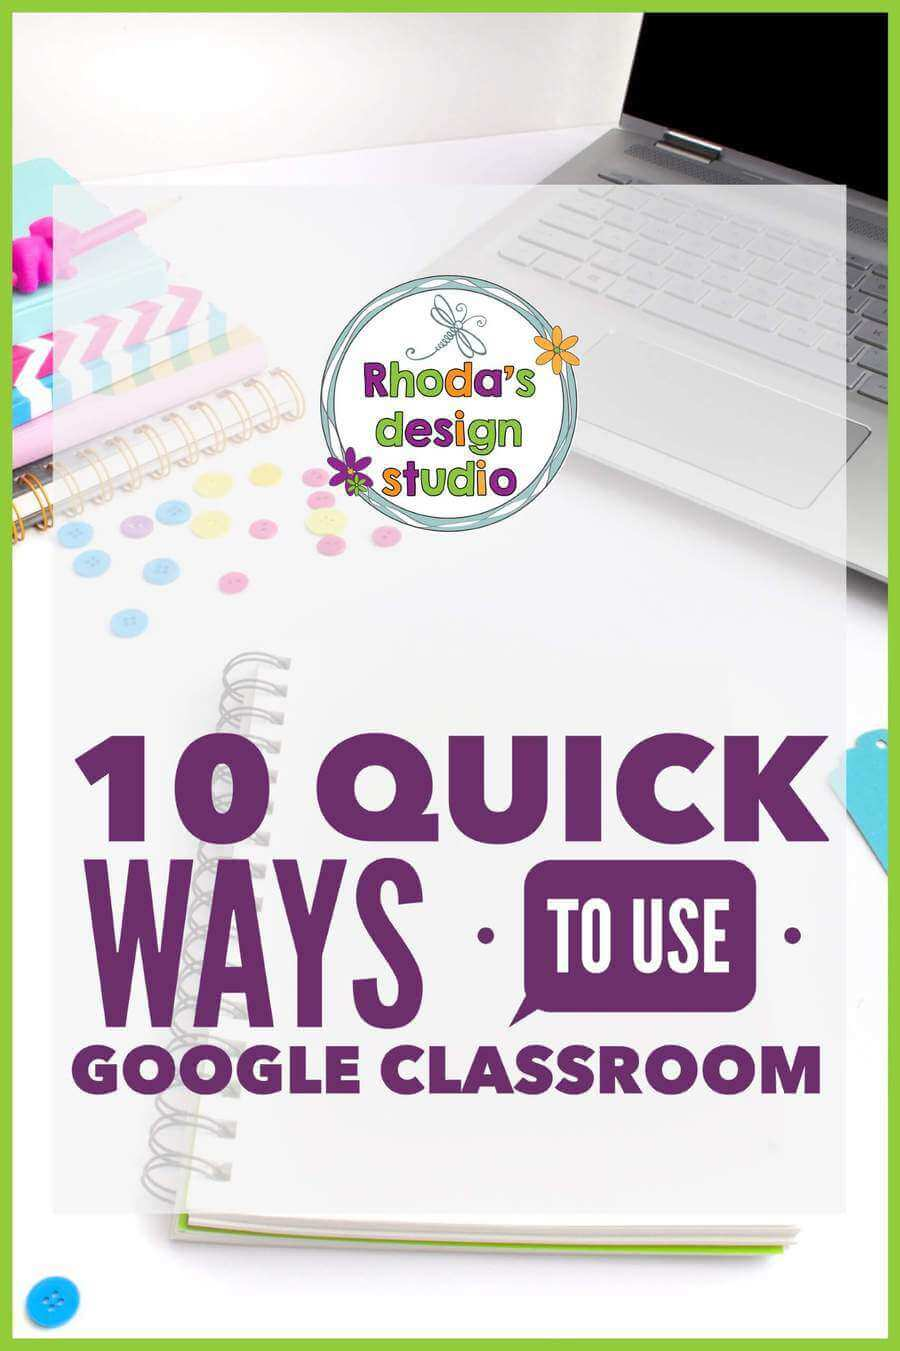 10 Quick Ways to Use Google Classroom. Learn the easiest and quickest ways to start using Google Classroom with your students. #GoogleClassroom #teacherresources